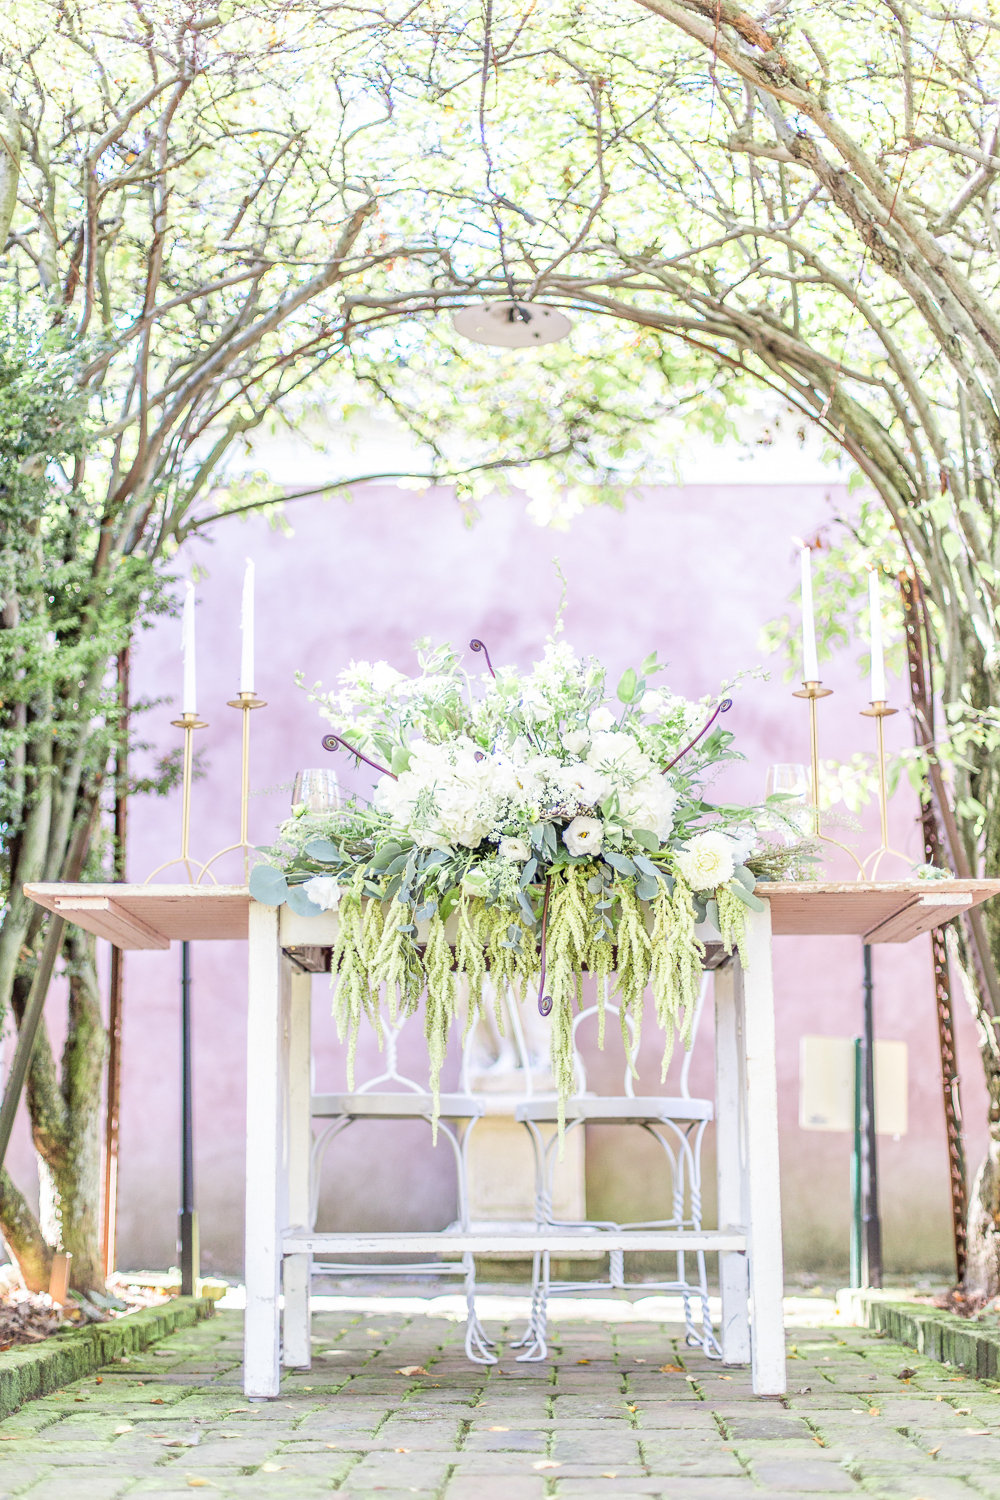 Green & White Organic Wedding Ideas via TheELD.com